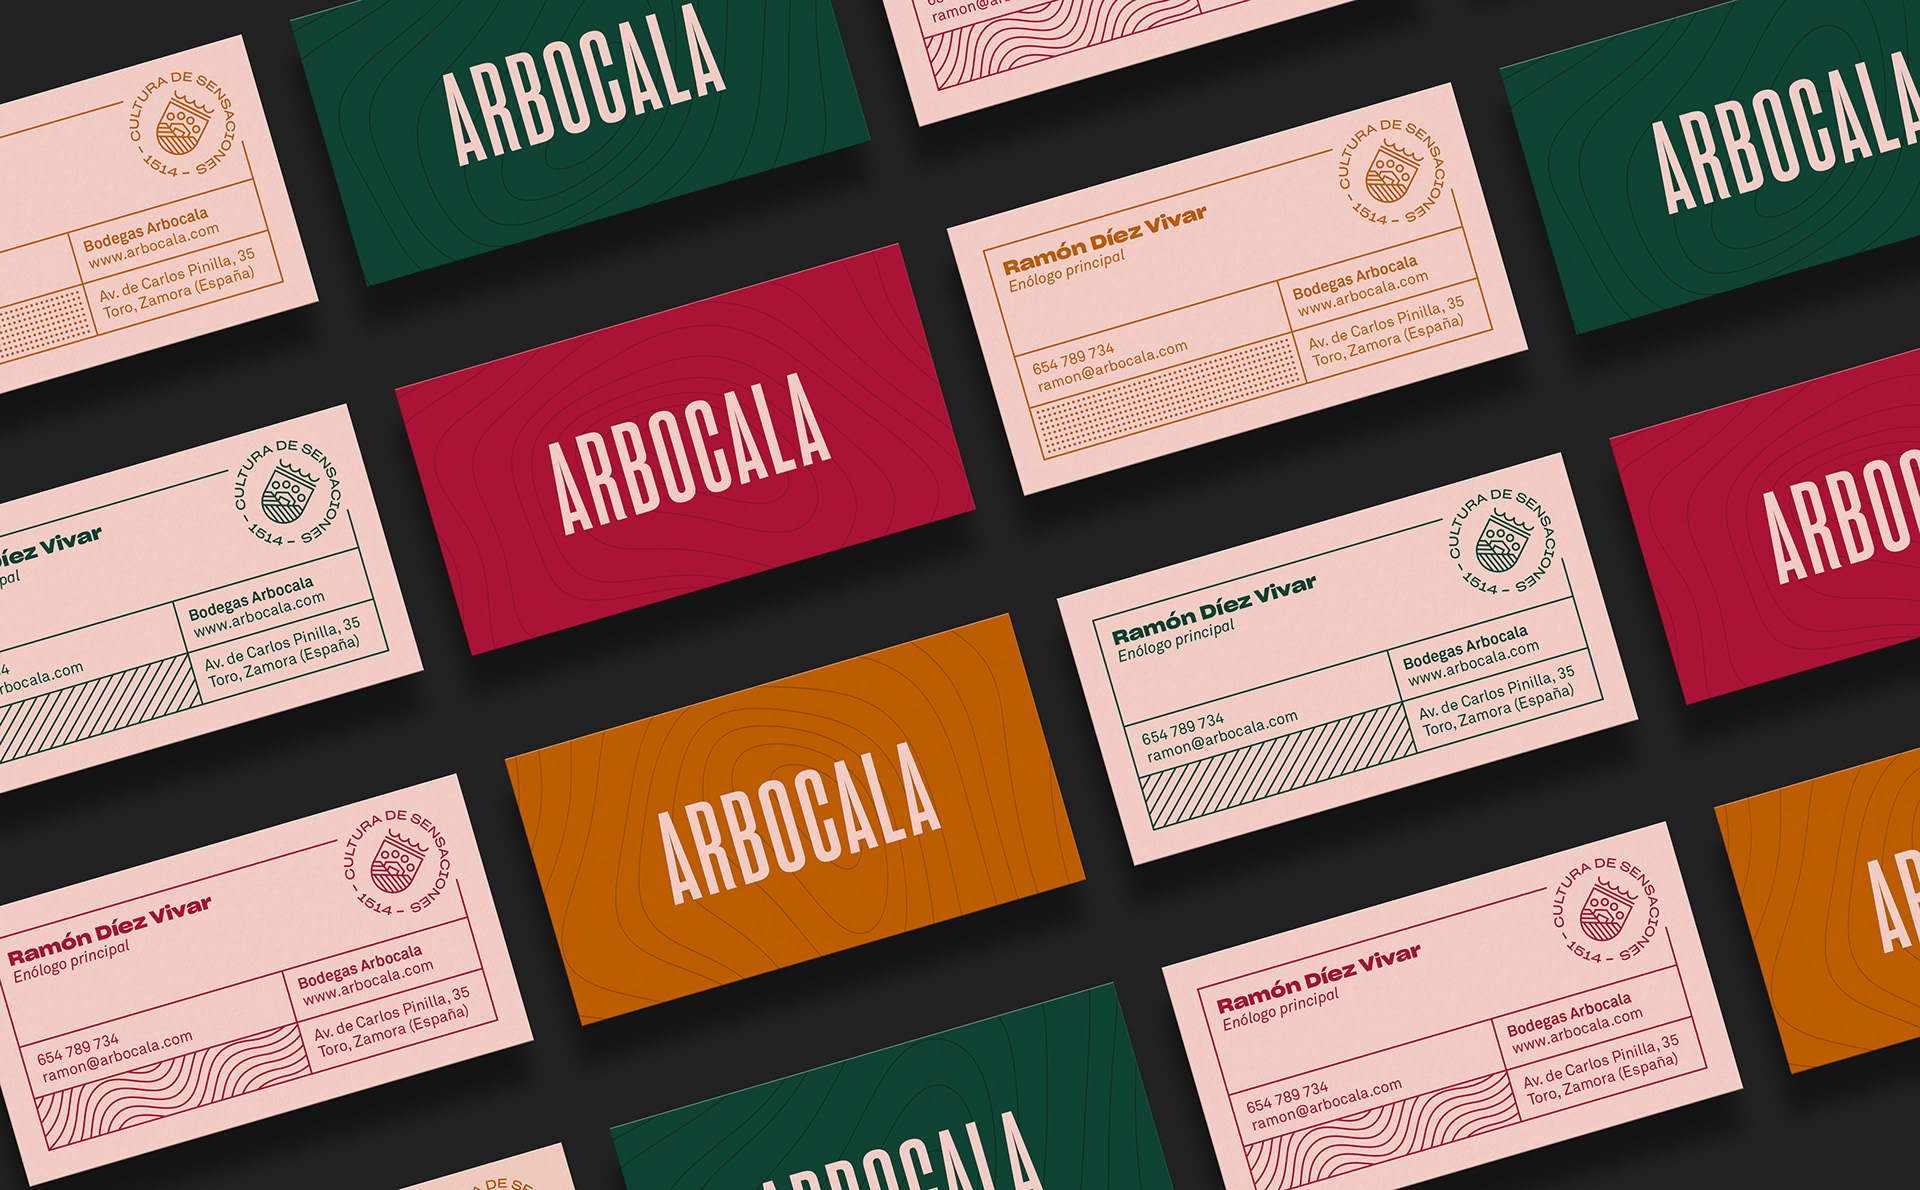 Arbocala business cards